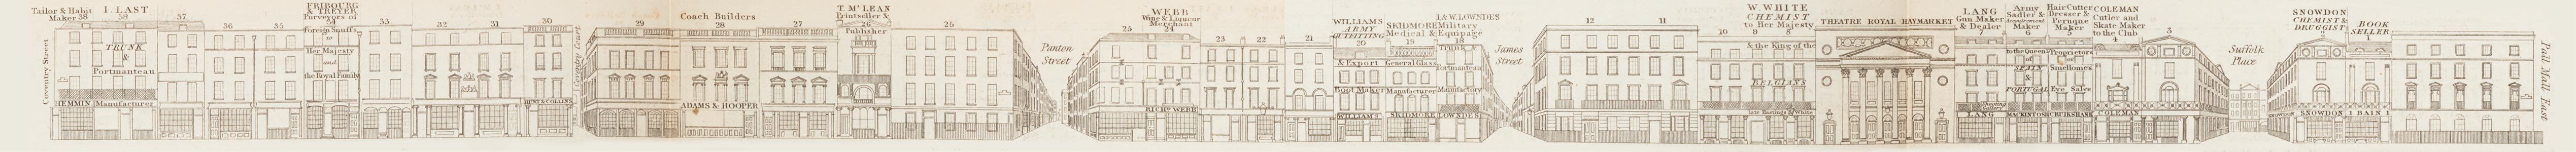 map - Tallis's London street views : No. 22. Haymarket (east)